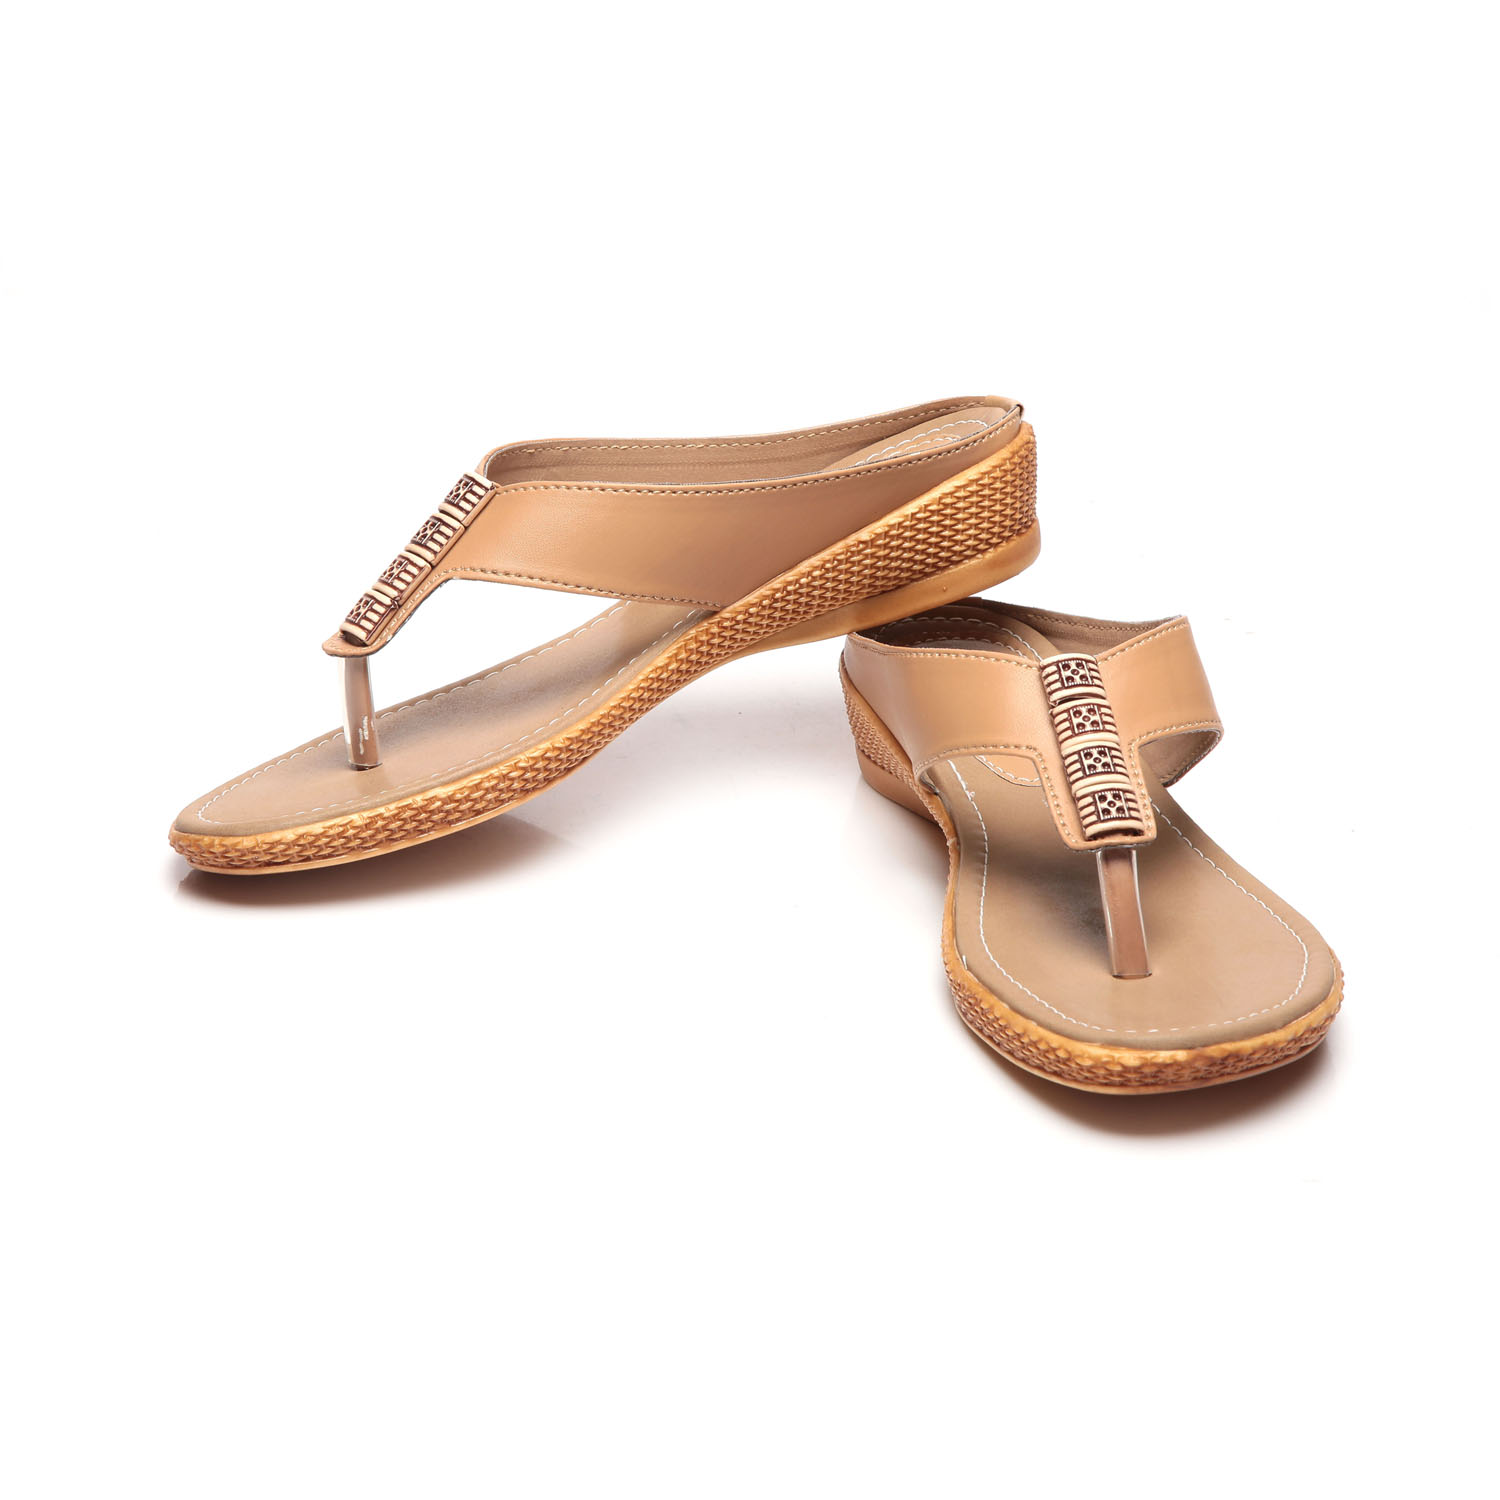 Synthetic Leather ABR Beige Flats